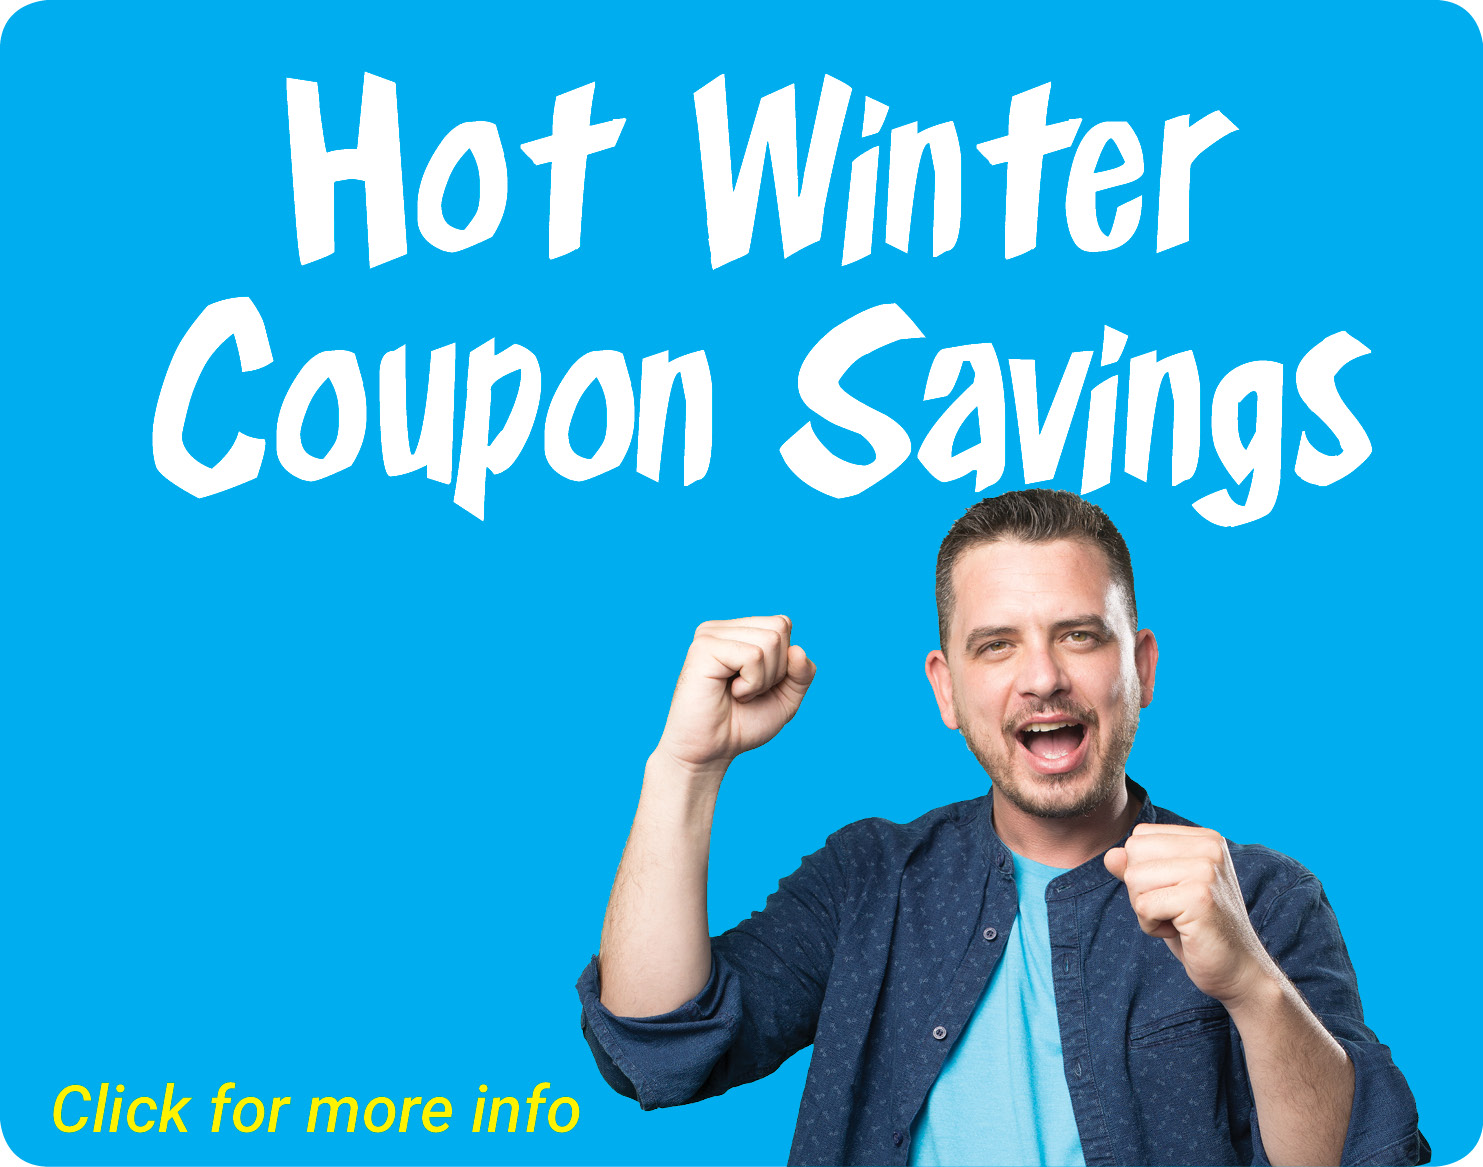 midwintercouponfrontbanner